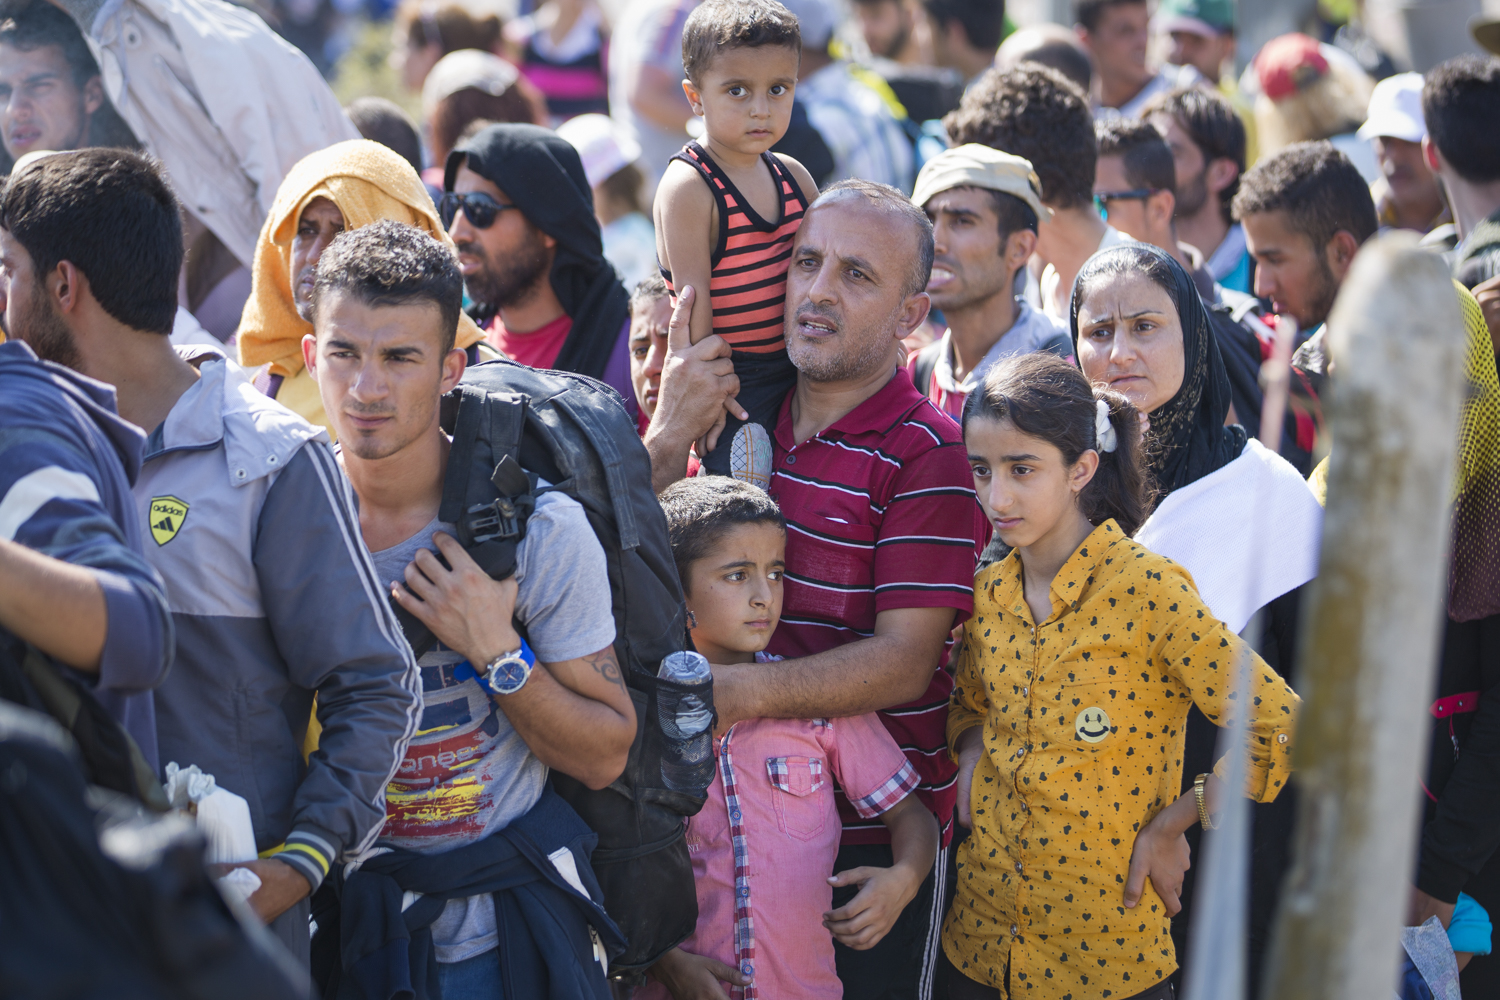 EU Migrant and Refugee Crisis - What You Need to Know